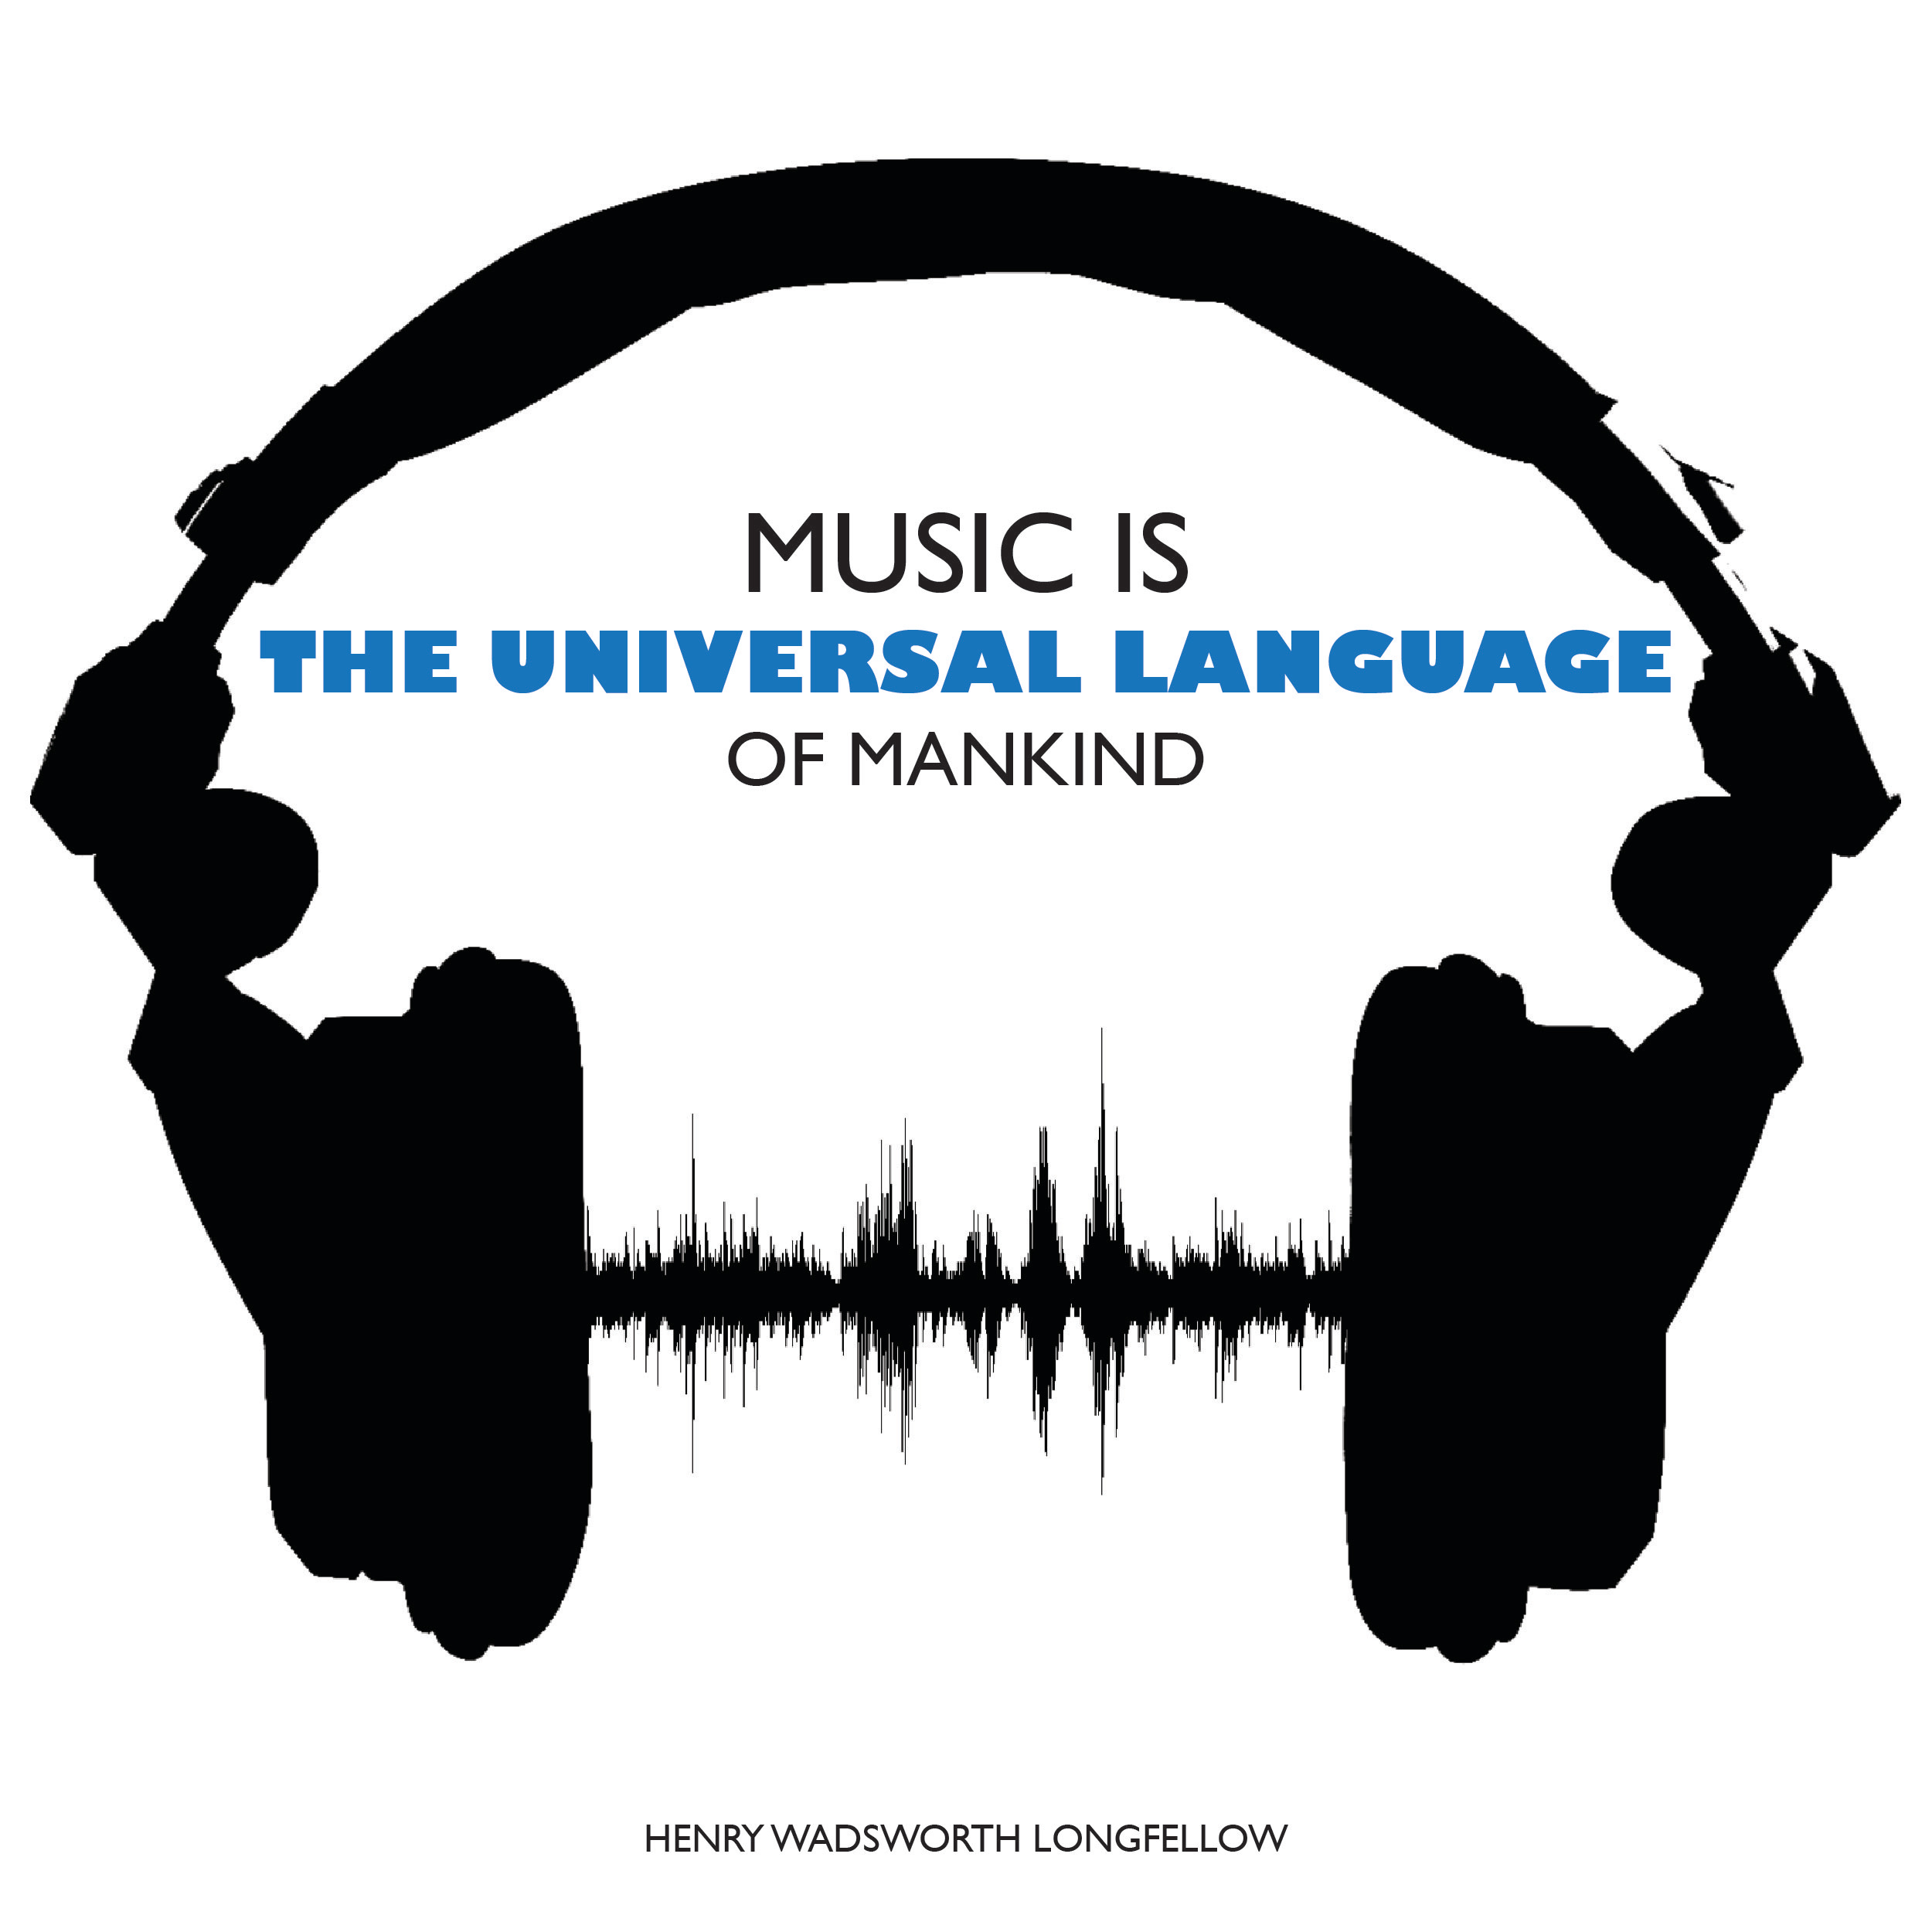 music.language